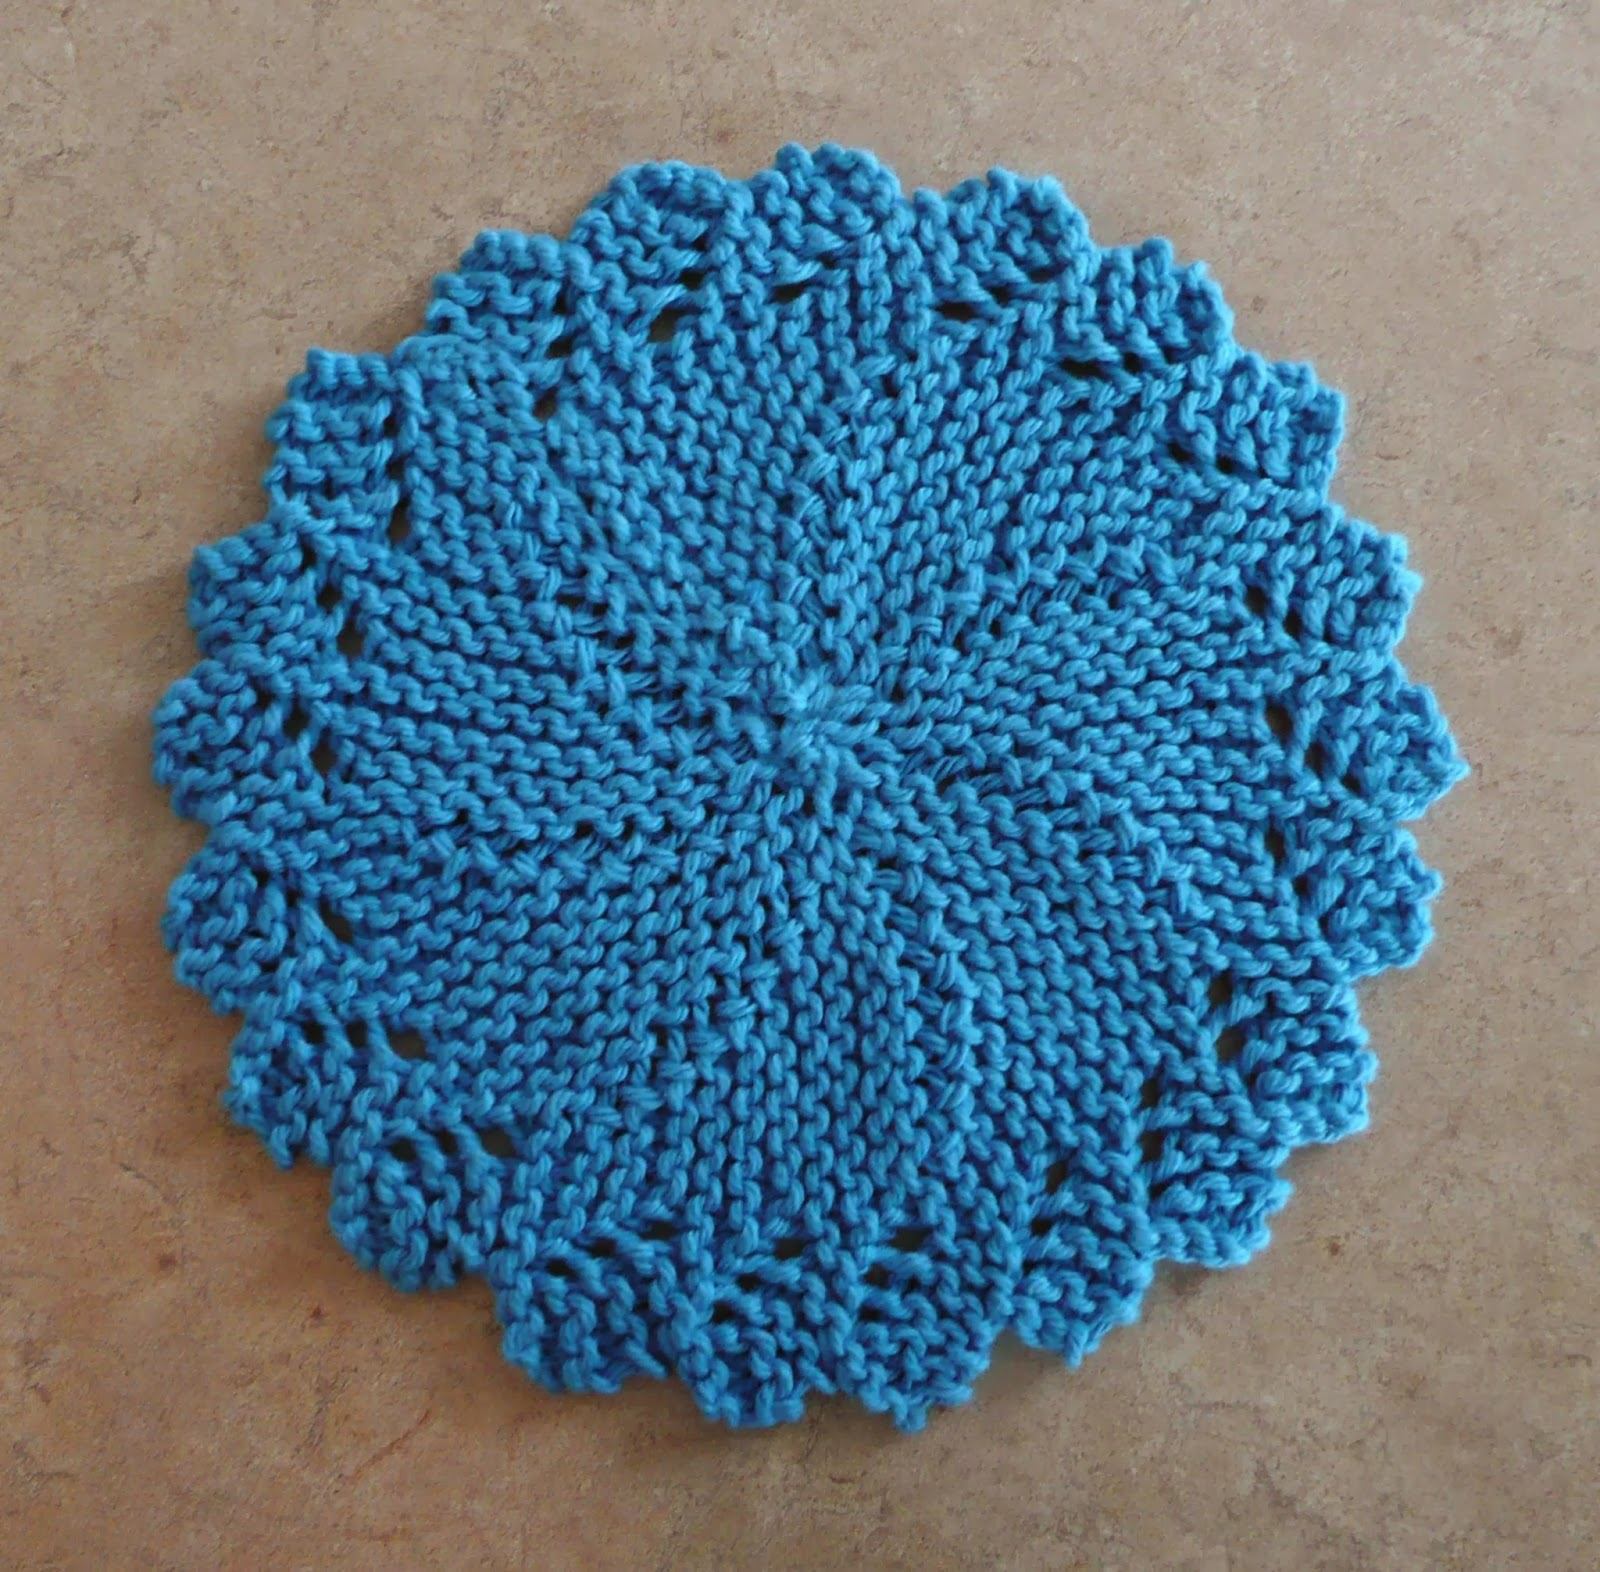 Perfect One-Ounce Dishcloth - FREE Patterns: FREE PATTERN #11 - Knitlist Lacy...